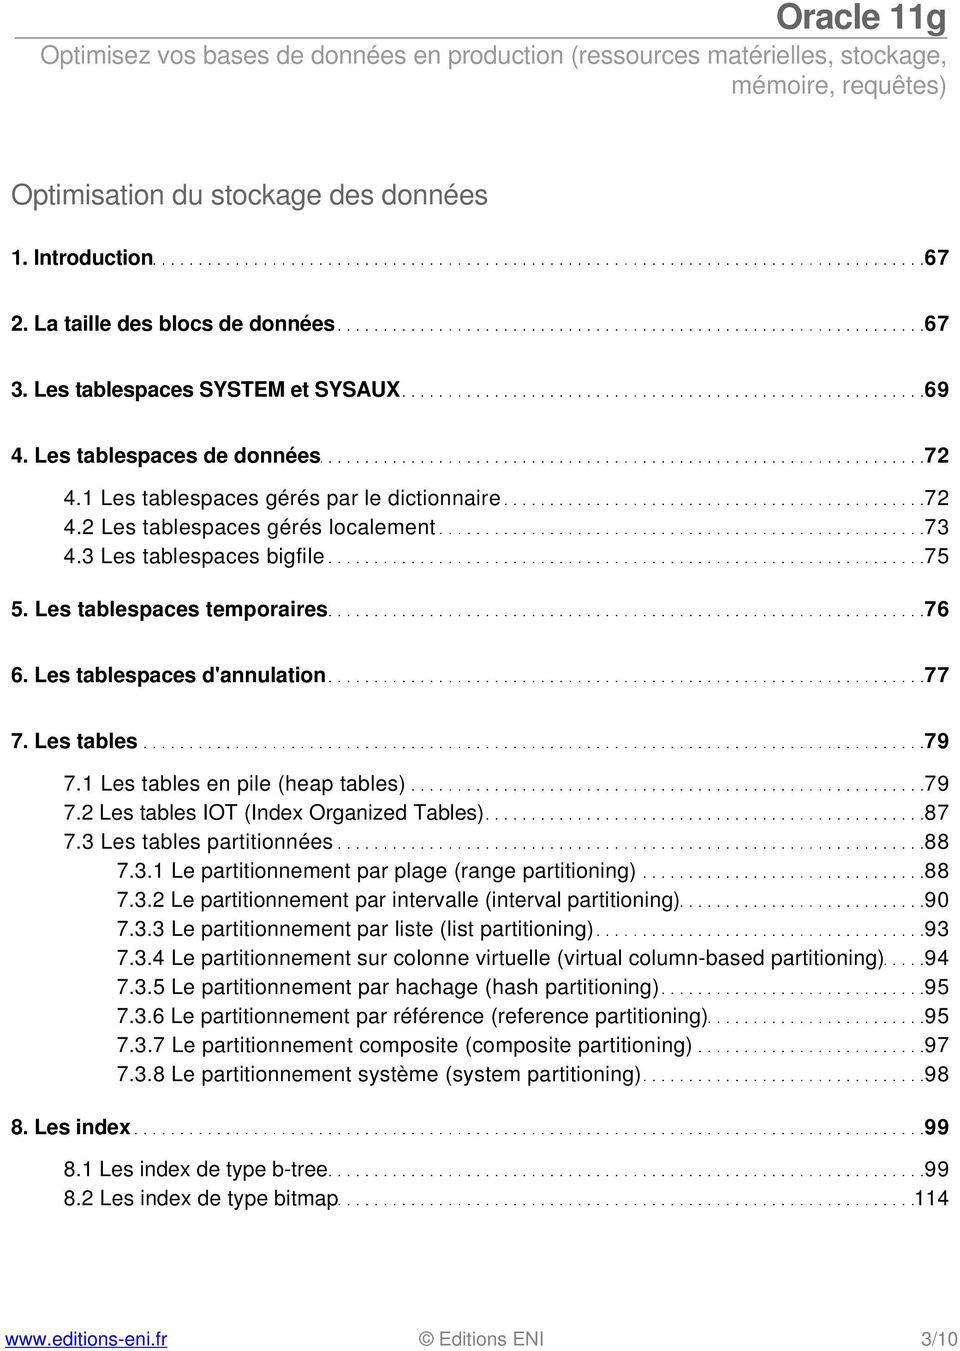 Les tables 79 7.1 Les tables en pile (heap tables) 79 7.2 Les tables IOT (Index Organized Tables) 87 7.3 Les tables partitionnées 88 7.3.1 Le partitionnement par plage (range partitioning) 88 7.3.2 Le partitionnement par intervalle (interval partitioning) 90 7.